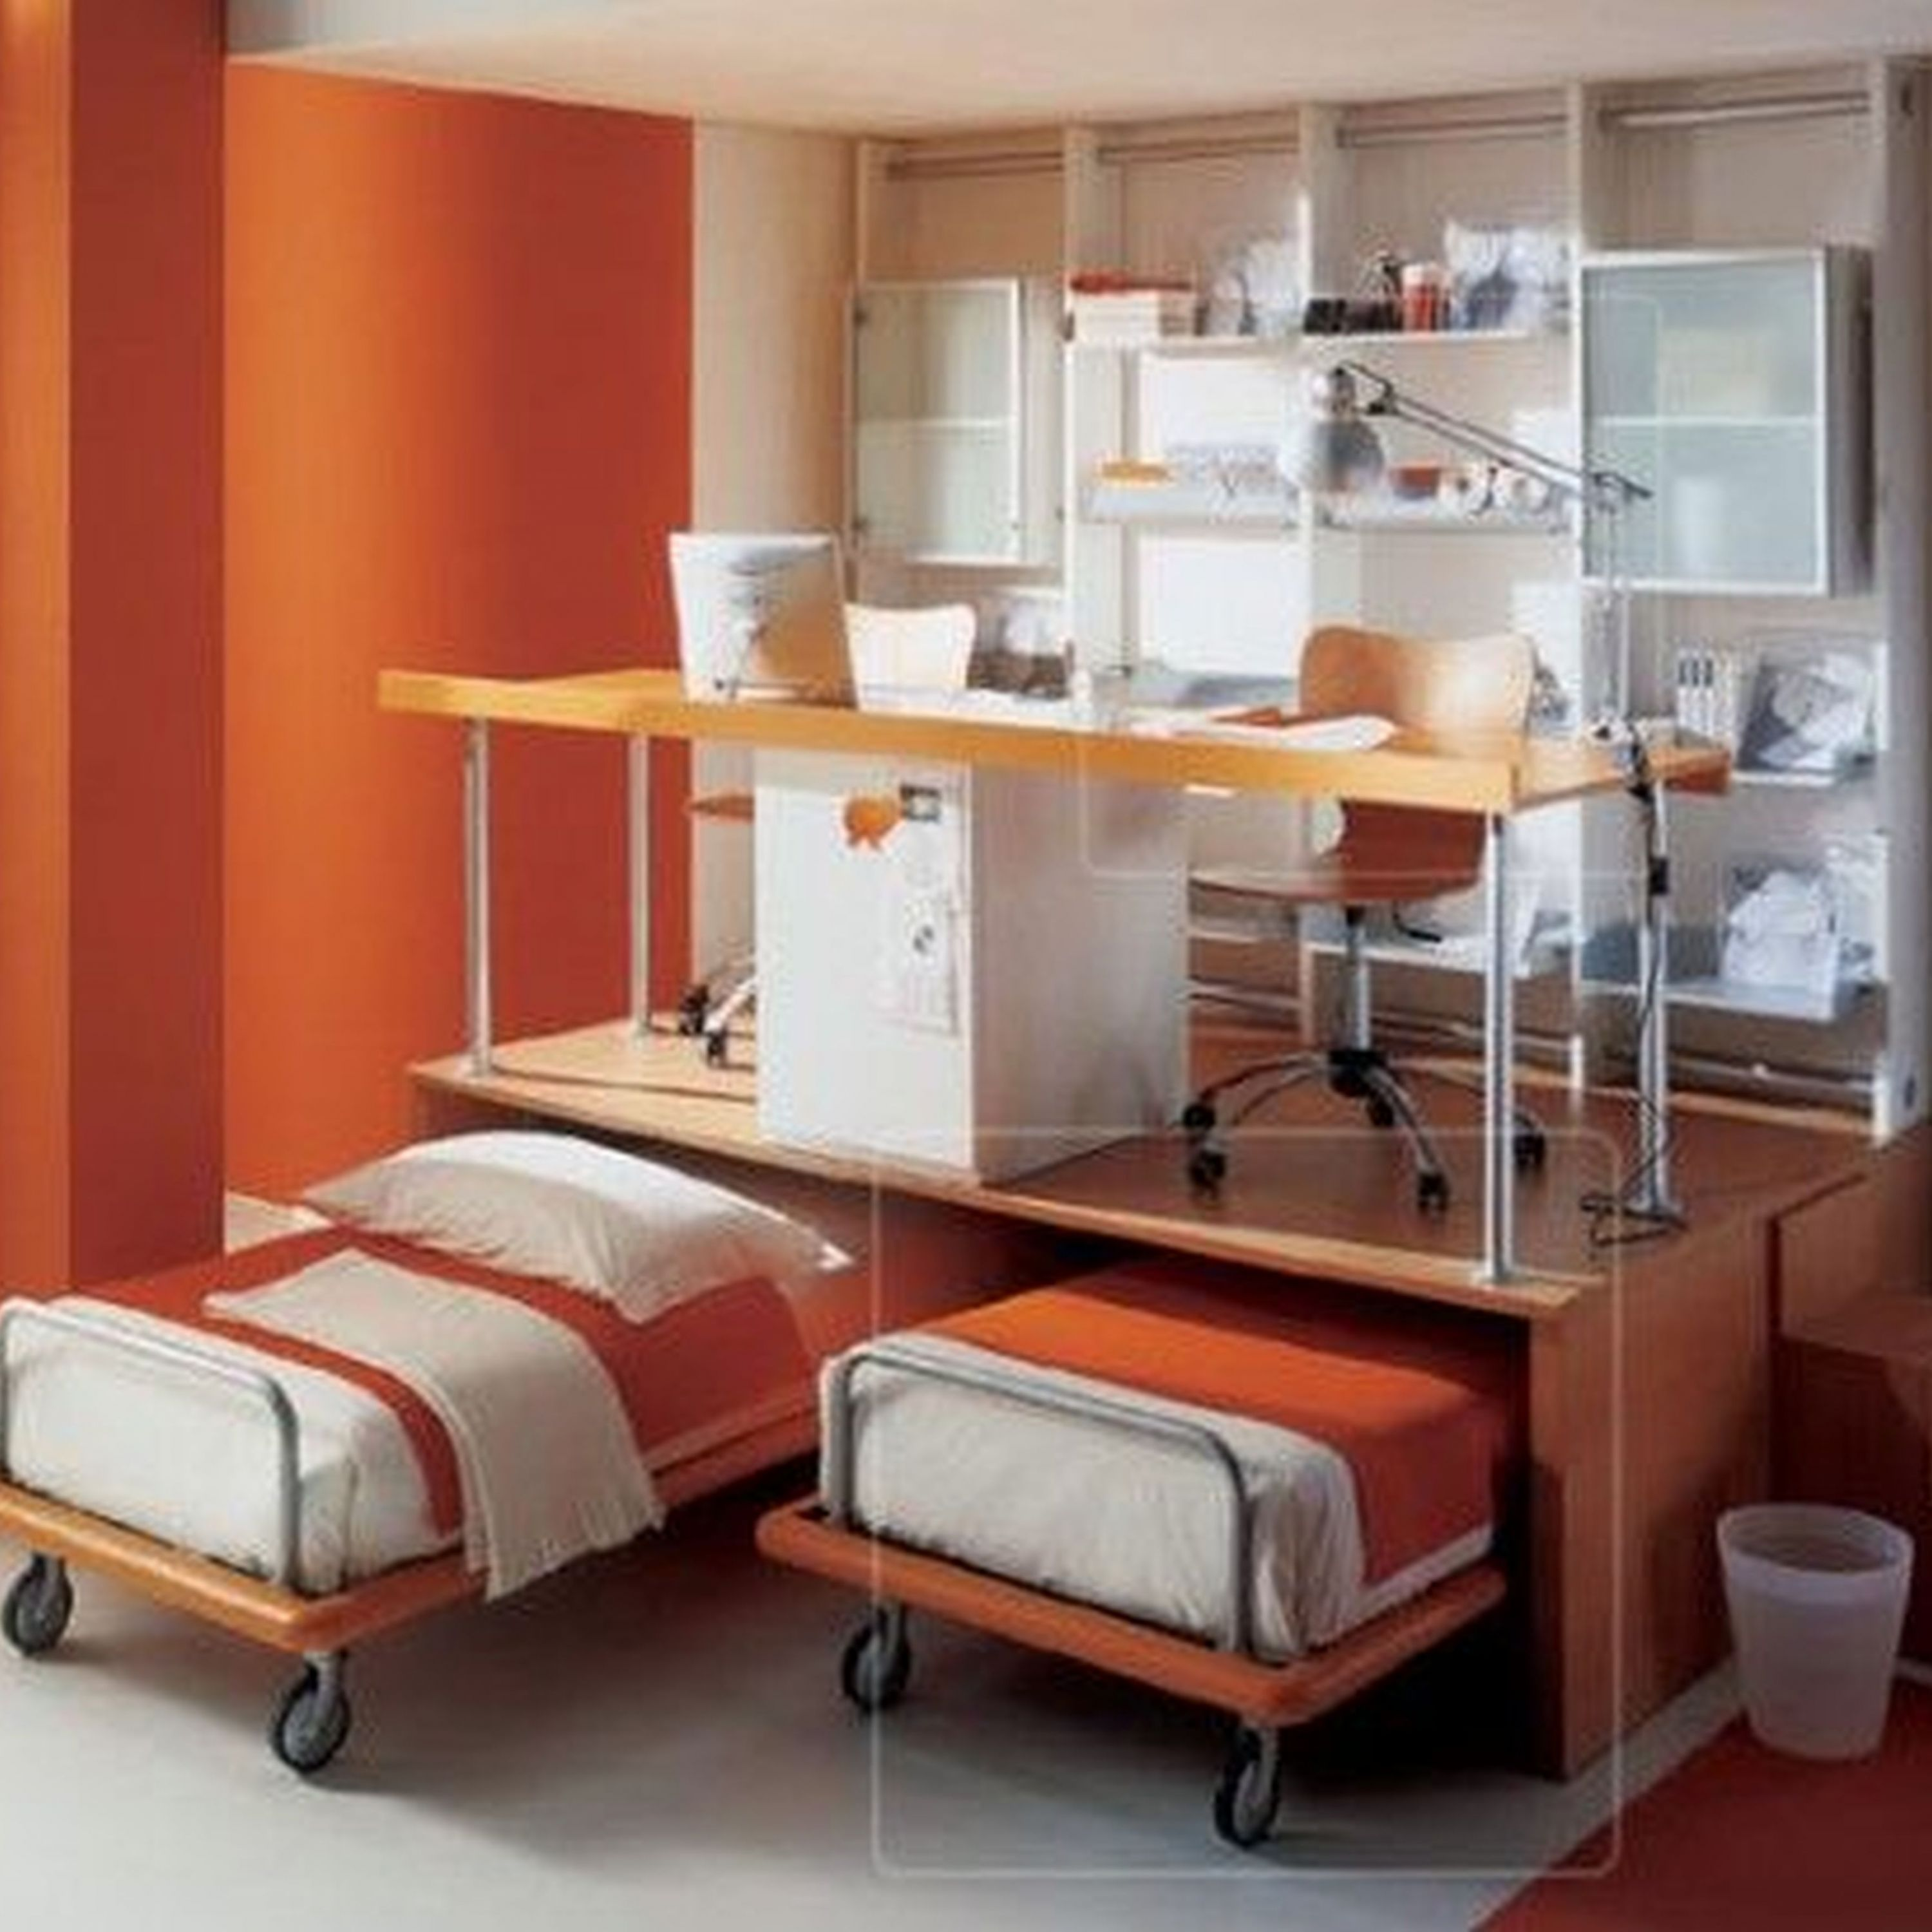 Storage Solutions For Small Spaces  Furniture Storage Solutions Mesmerizing Storage Solutions For A Small Bedroom Design Inspiration